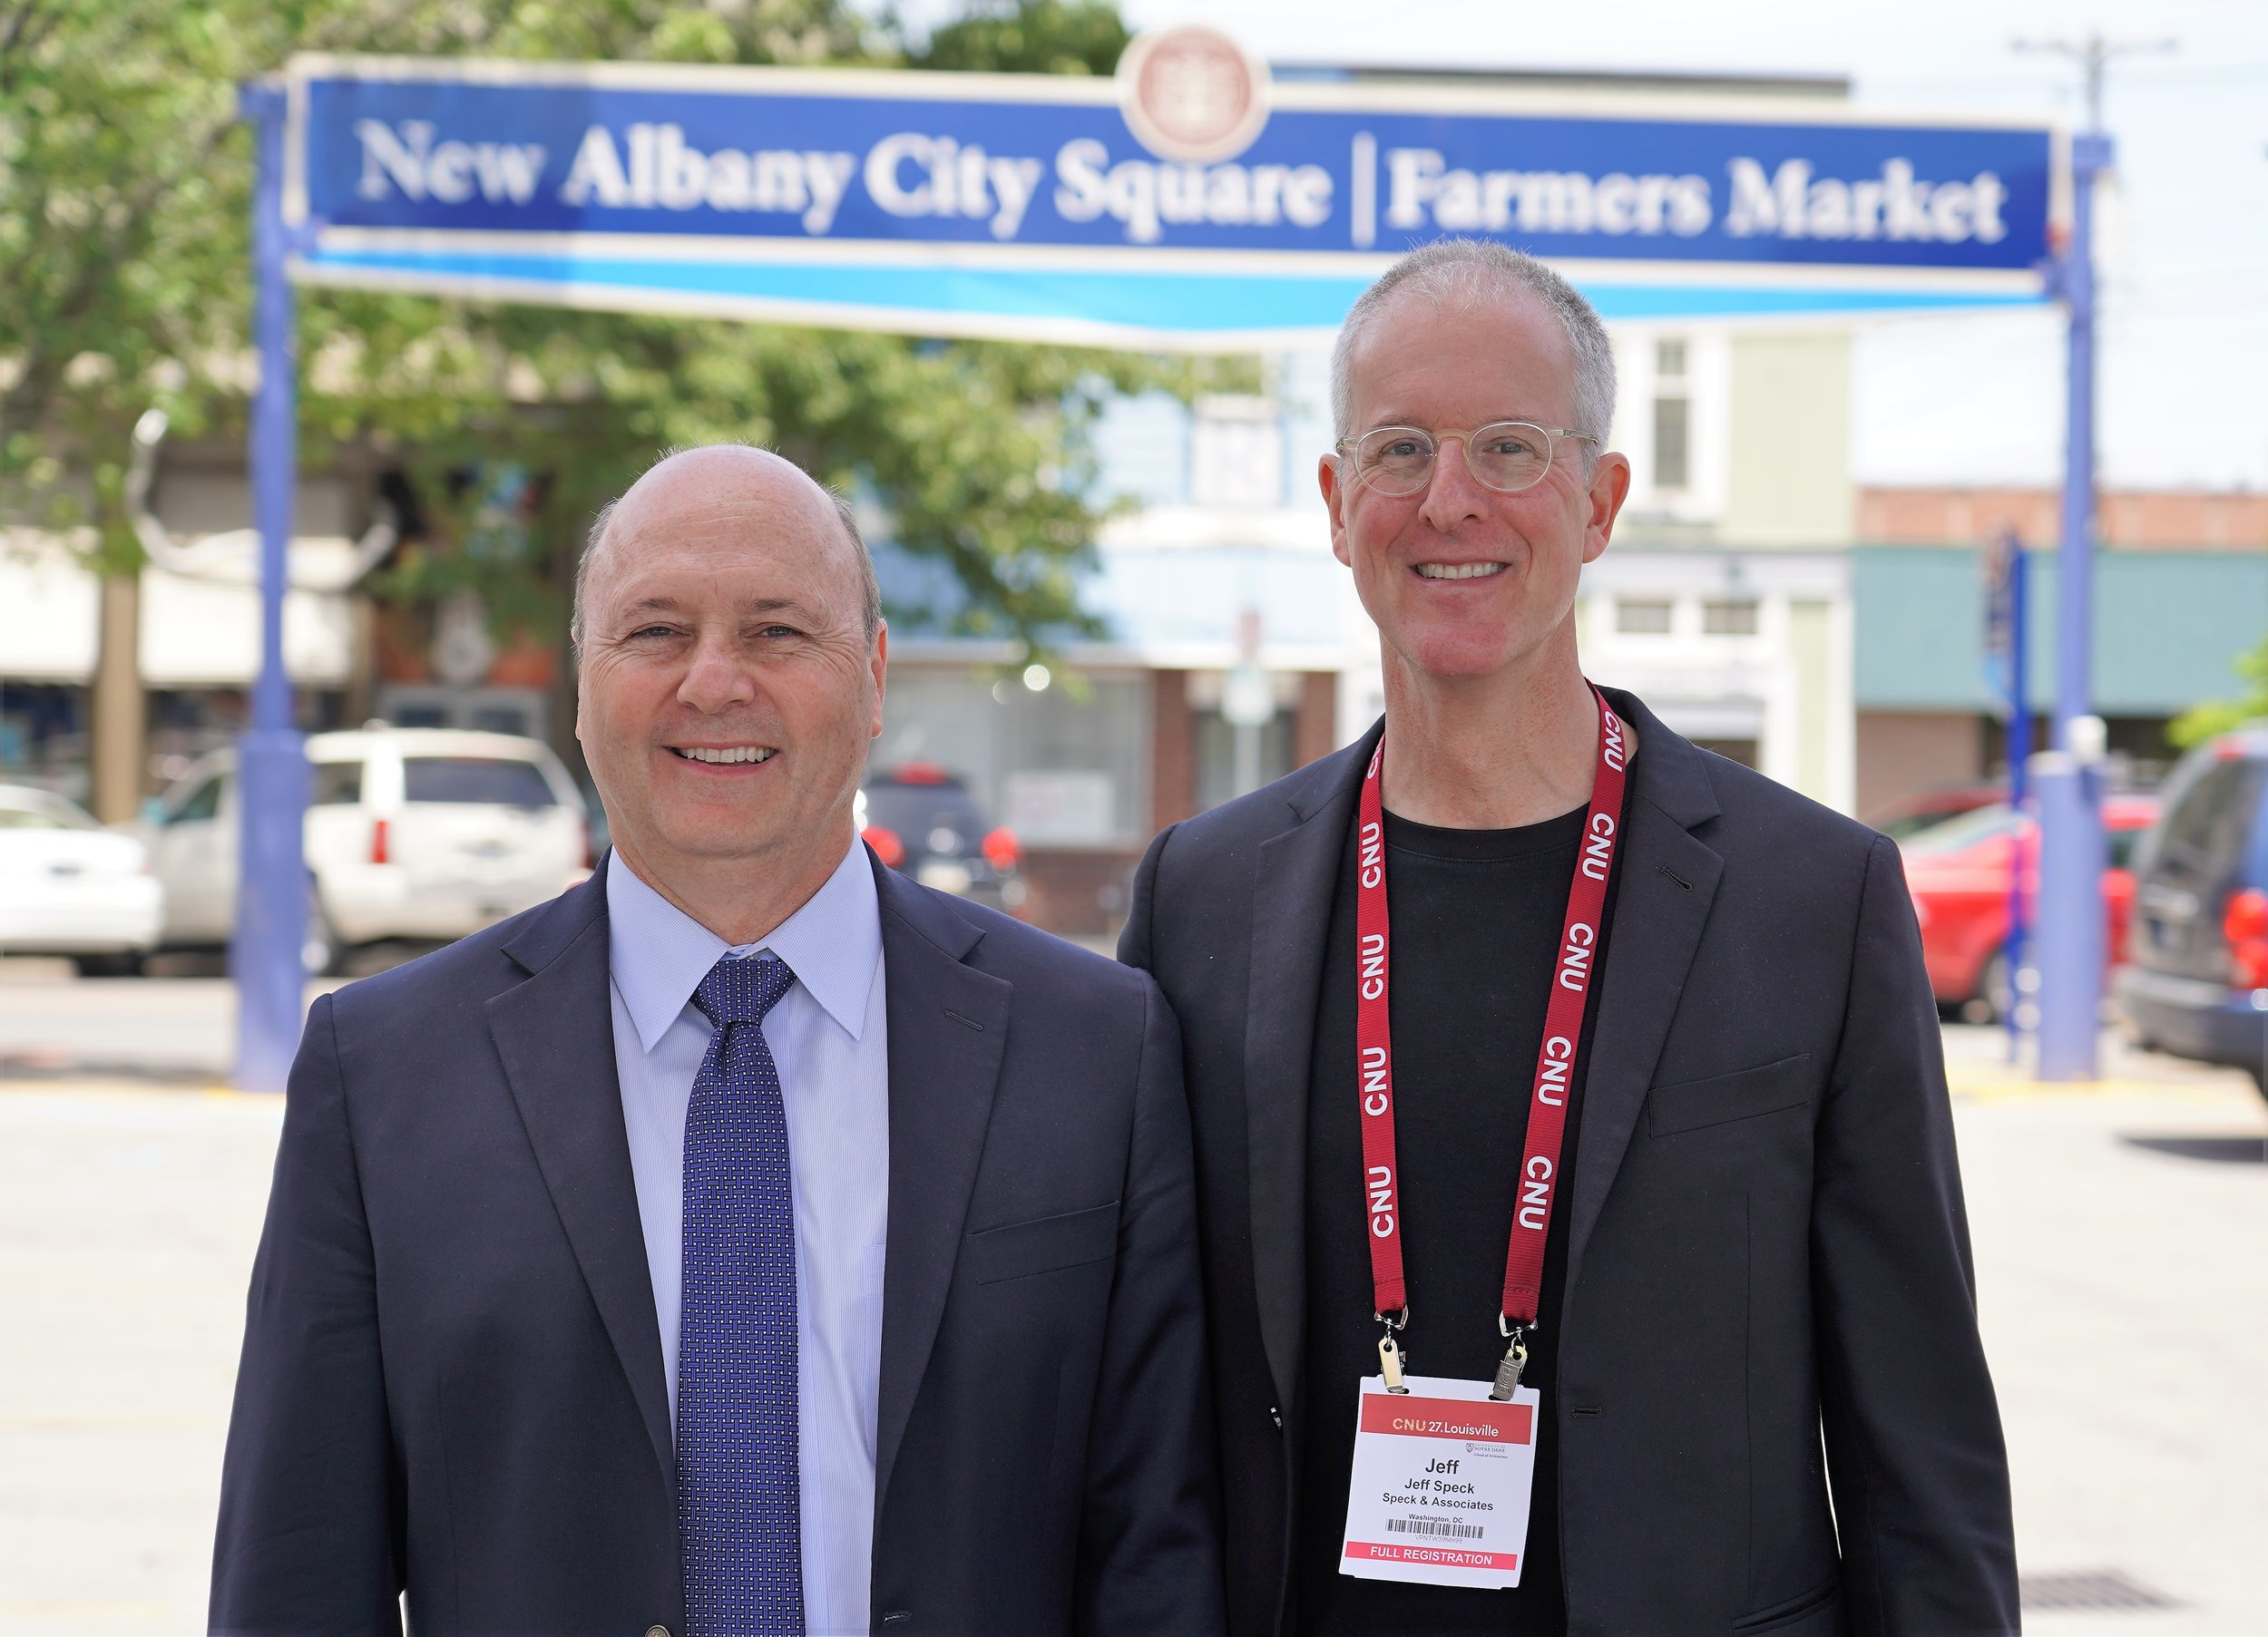 Mayor Jeff Gahan and renowned city-planner Jeff Speck.